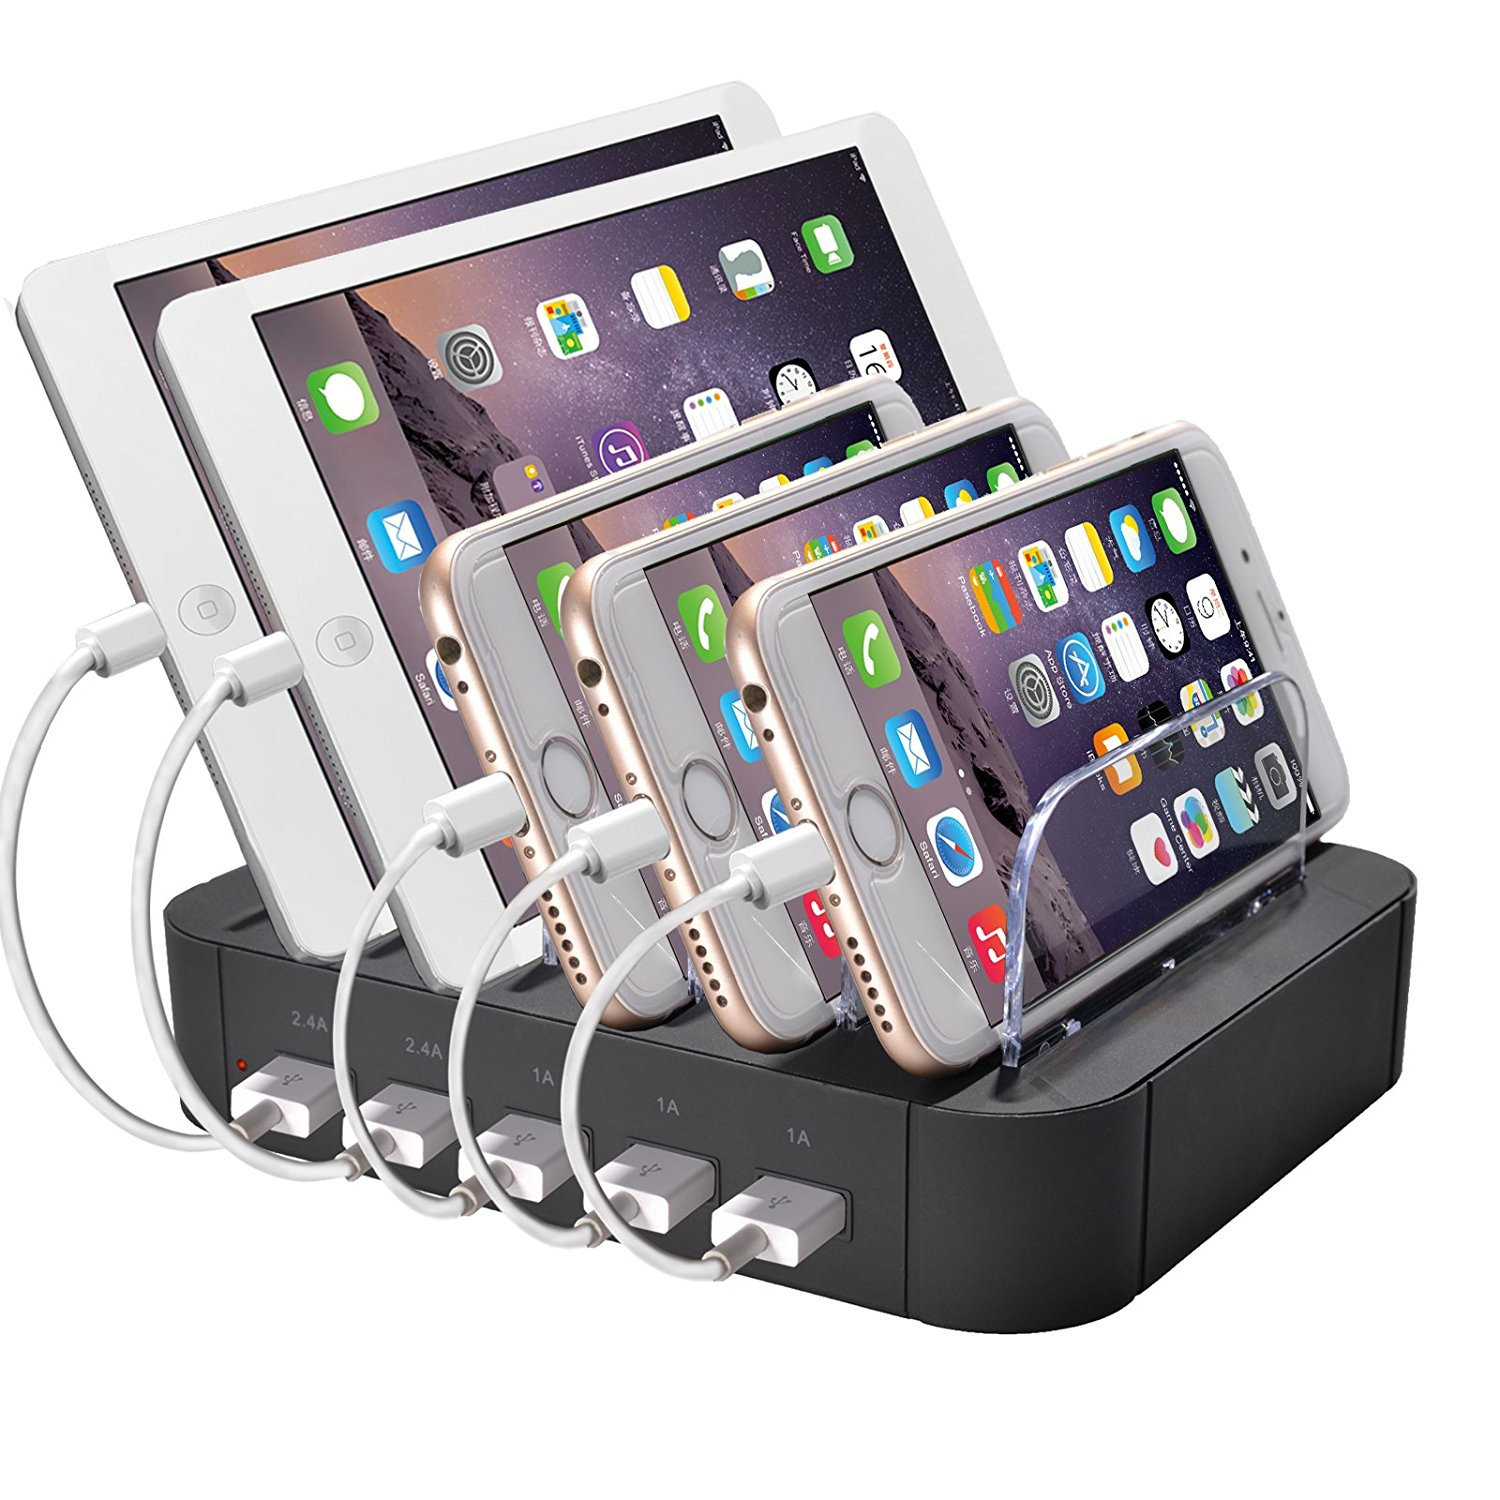 Get Quotations Usb Charging Station Universal Multi Port Dock Charger Organizer For Multiple Devices